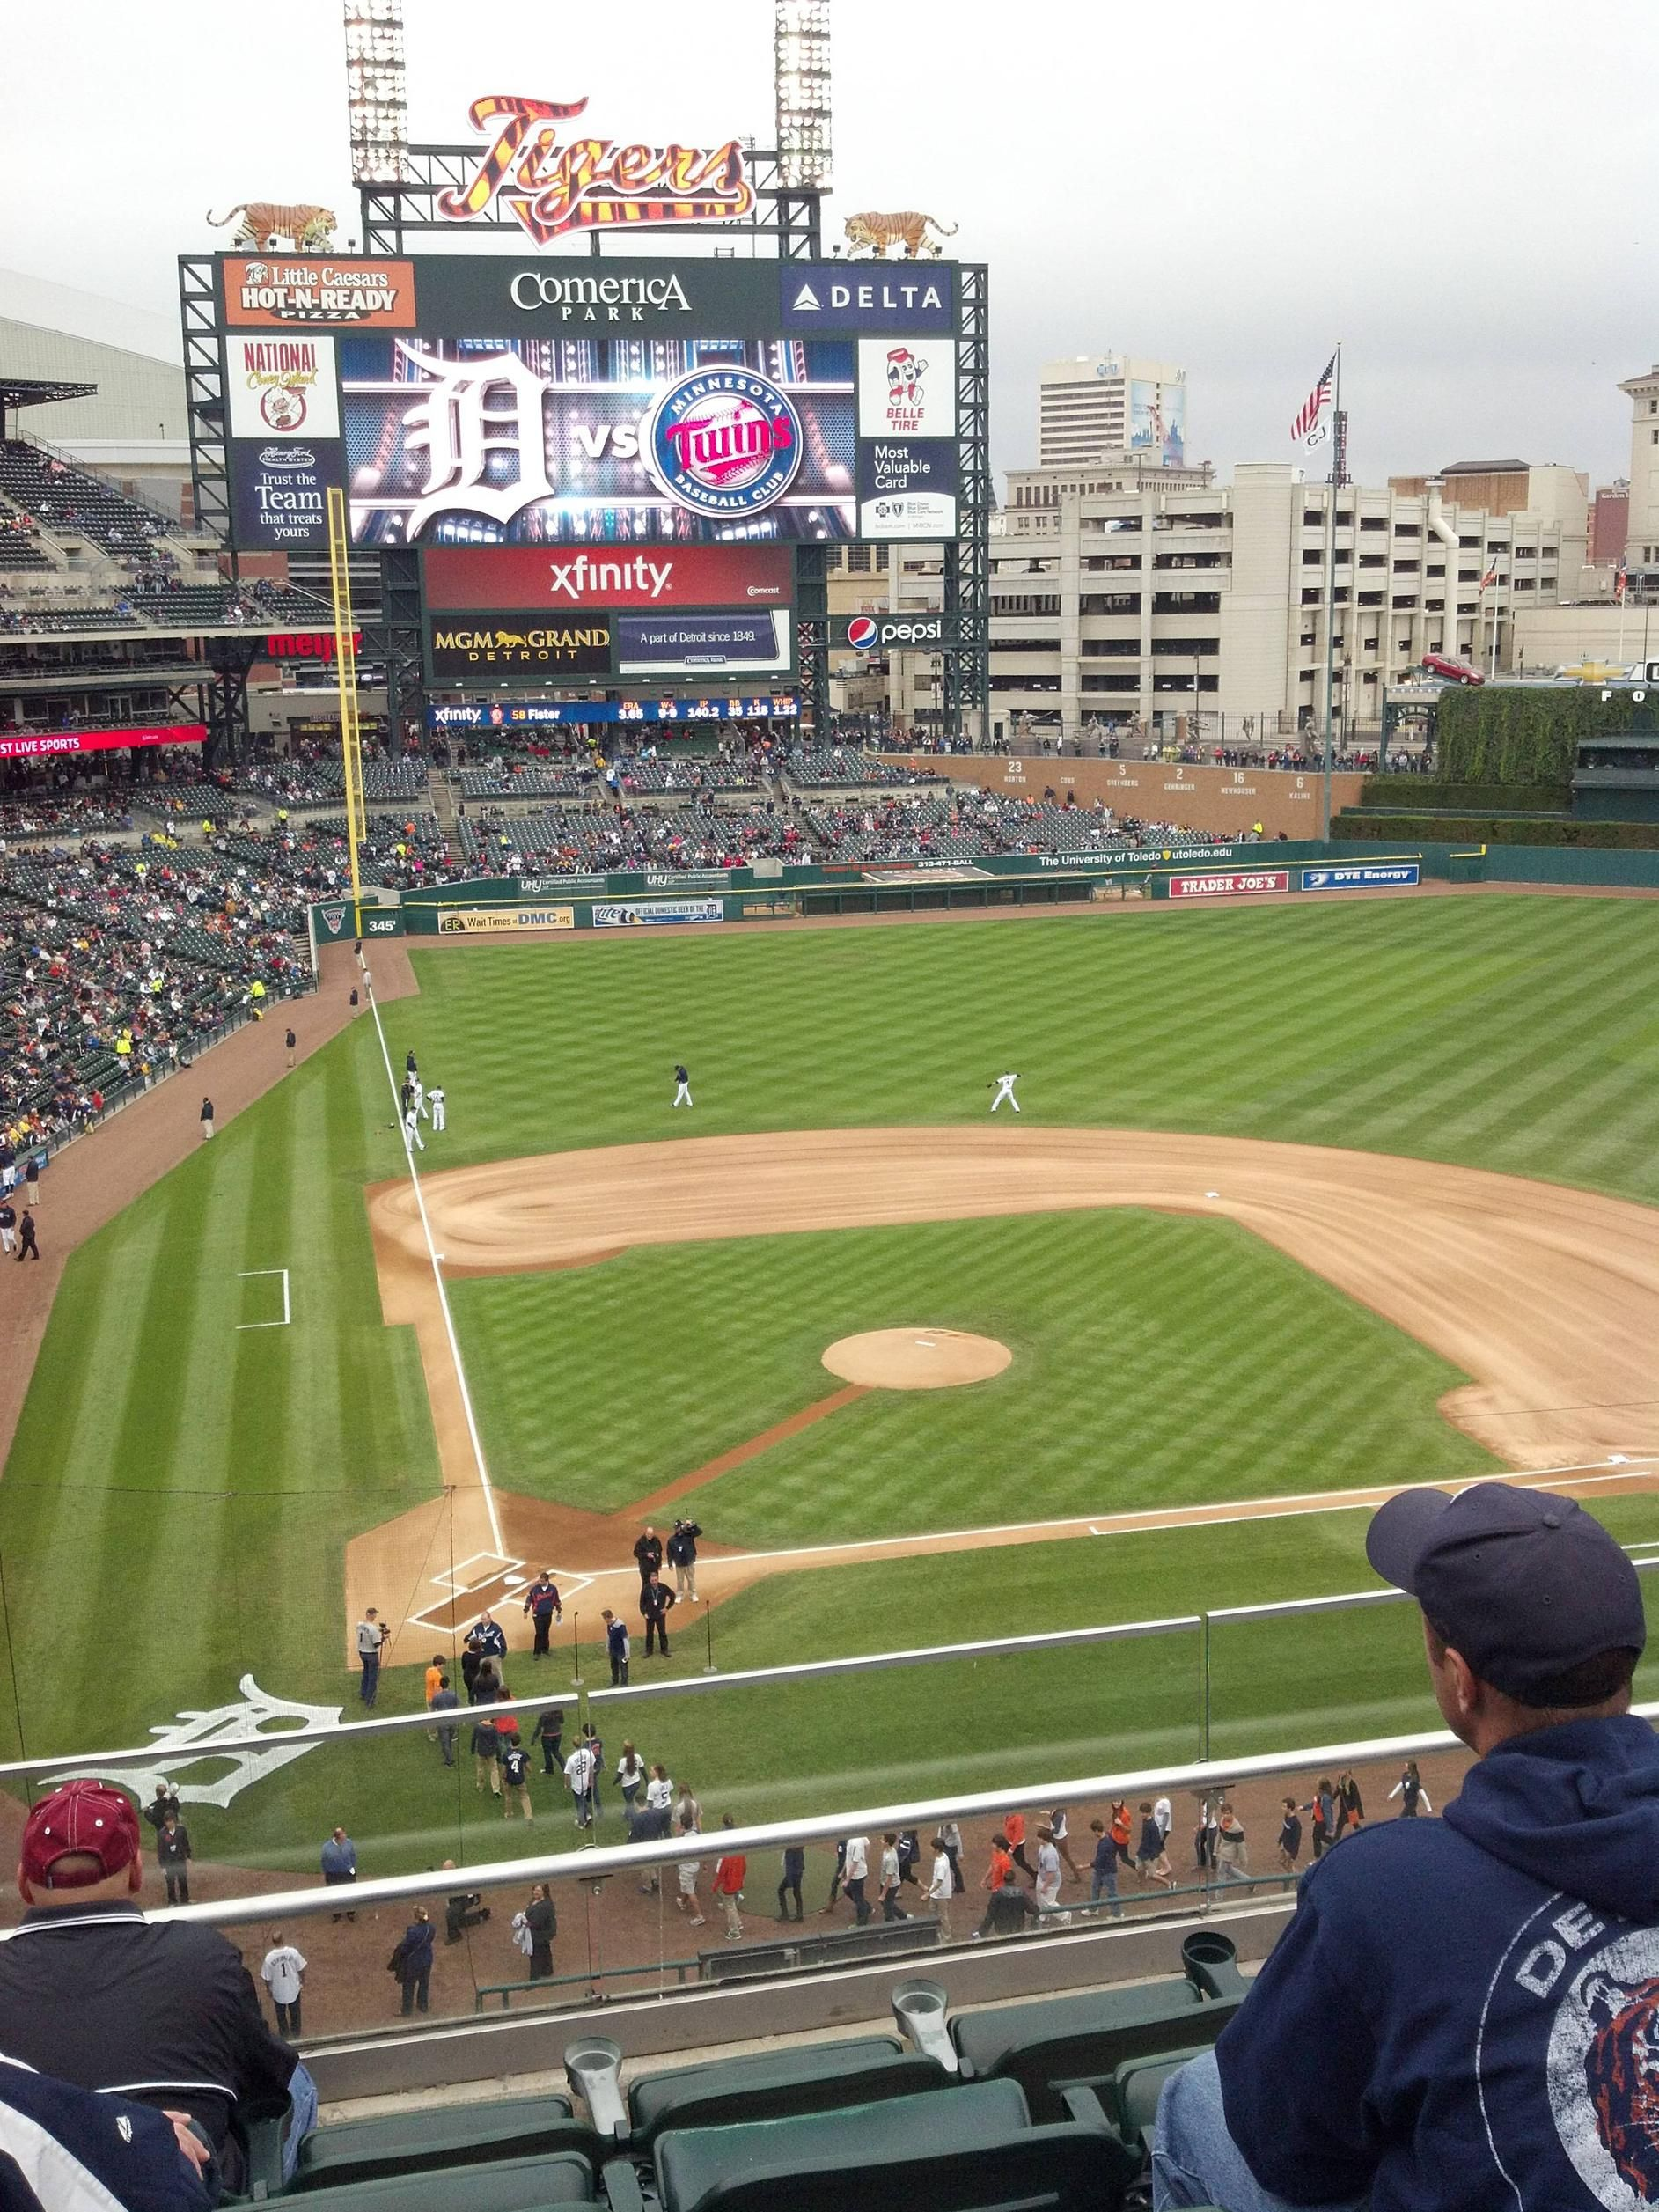 Pin By Michael Katz On Baseball Baseball Stadium Mlb Stadiums Michigan Sports